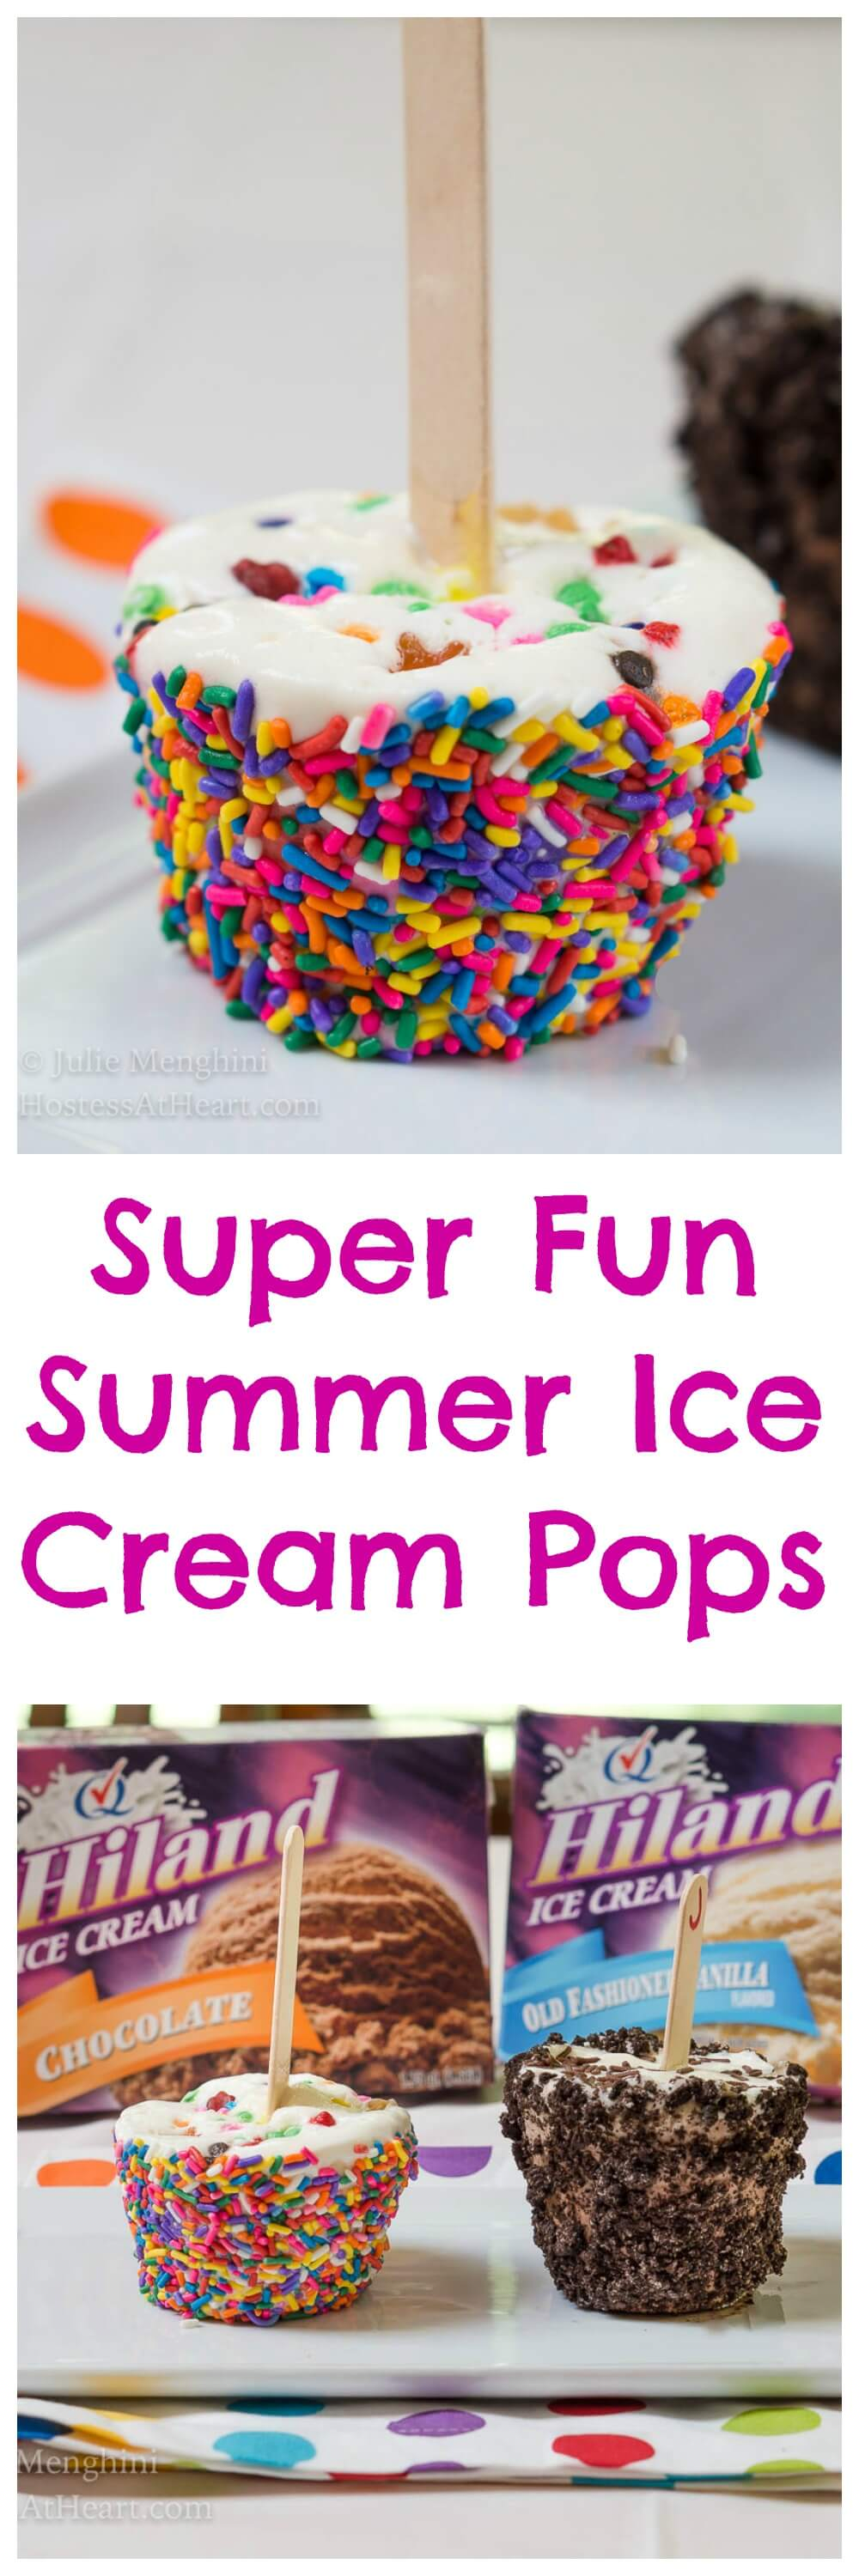 Super Fun Summer Ice Cream Pops with Hiland Dairy make a perfect and delicious summer activity for the whole family. | HostessAtHeart.com #ad